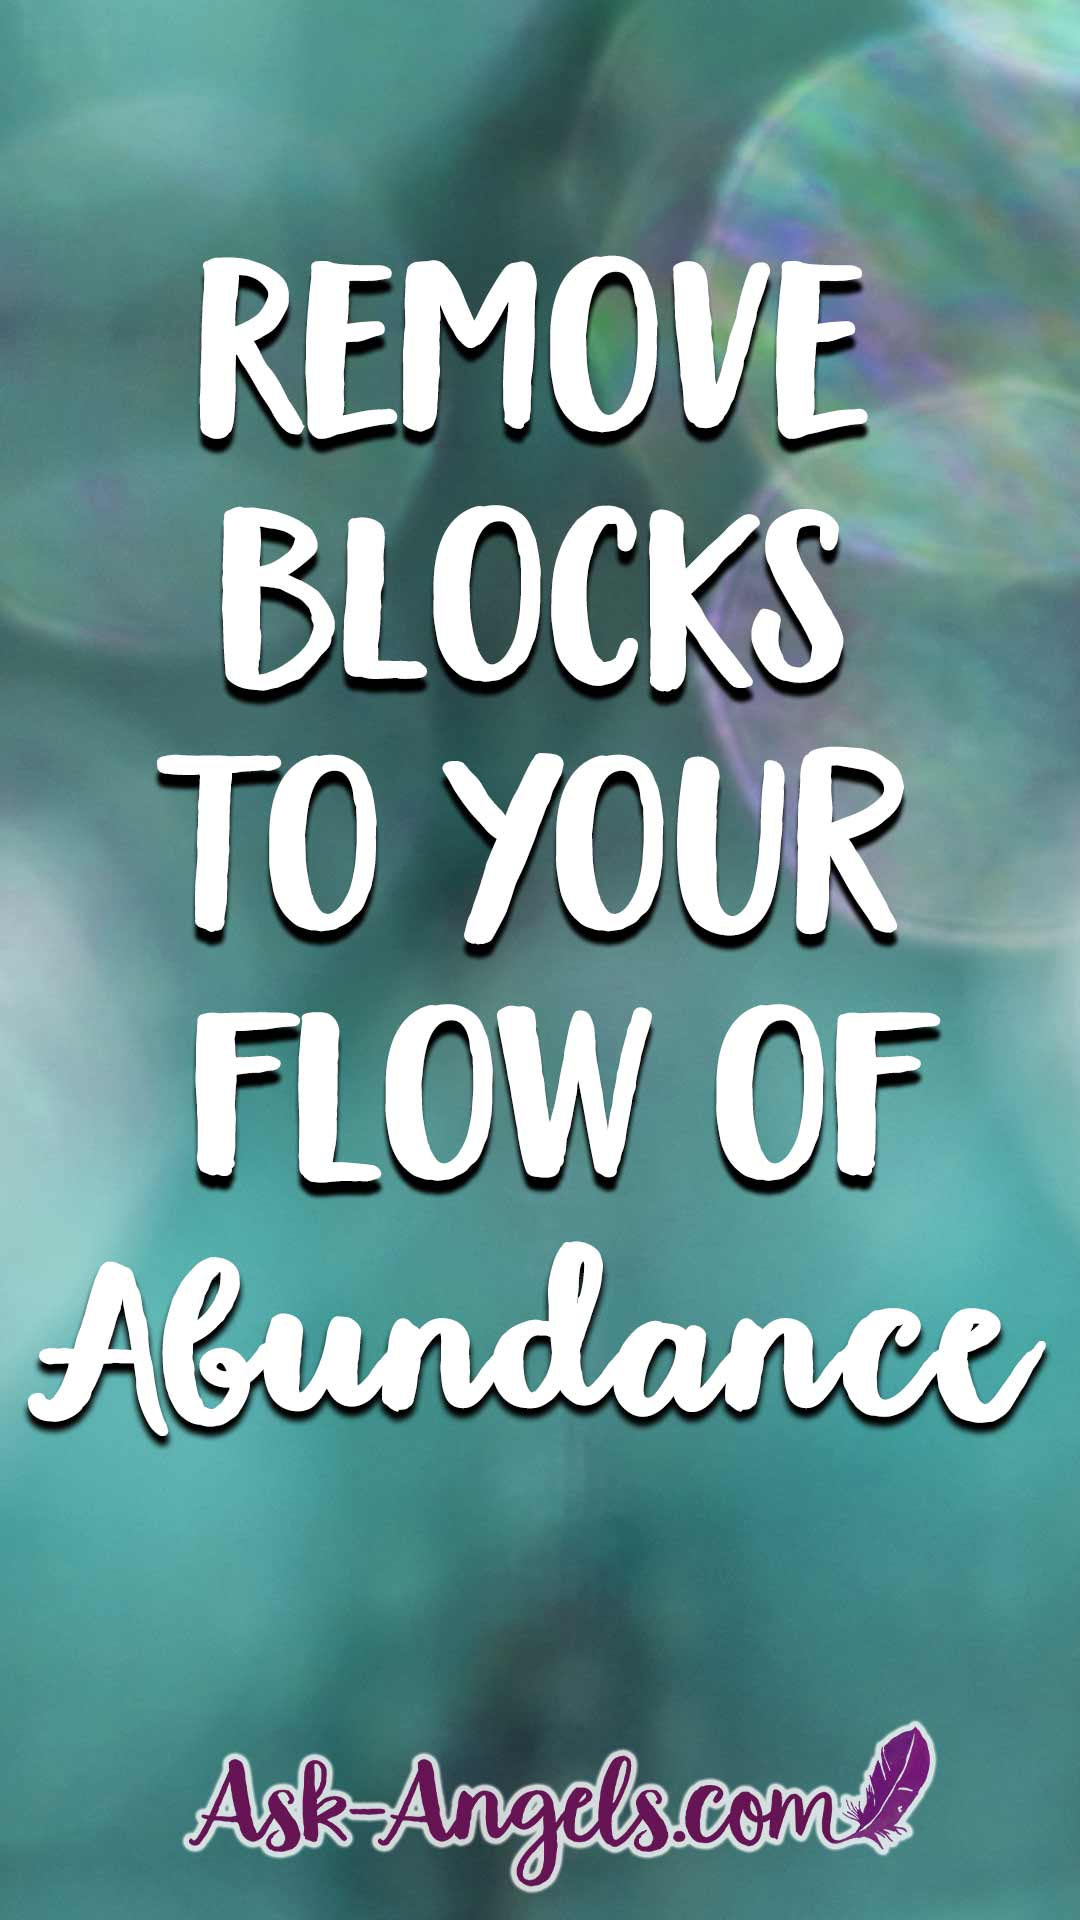 Remove Blocks To Your Flow Of Abundance